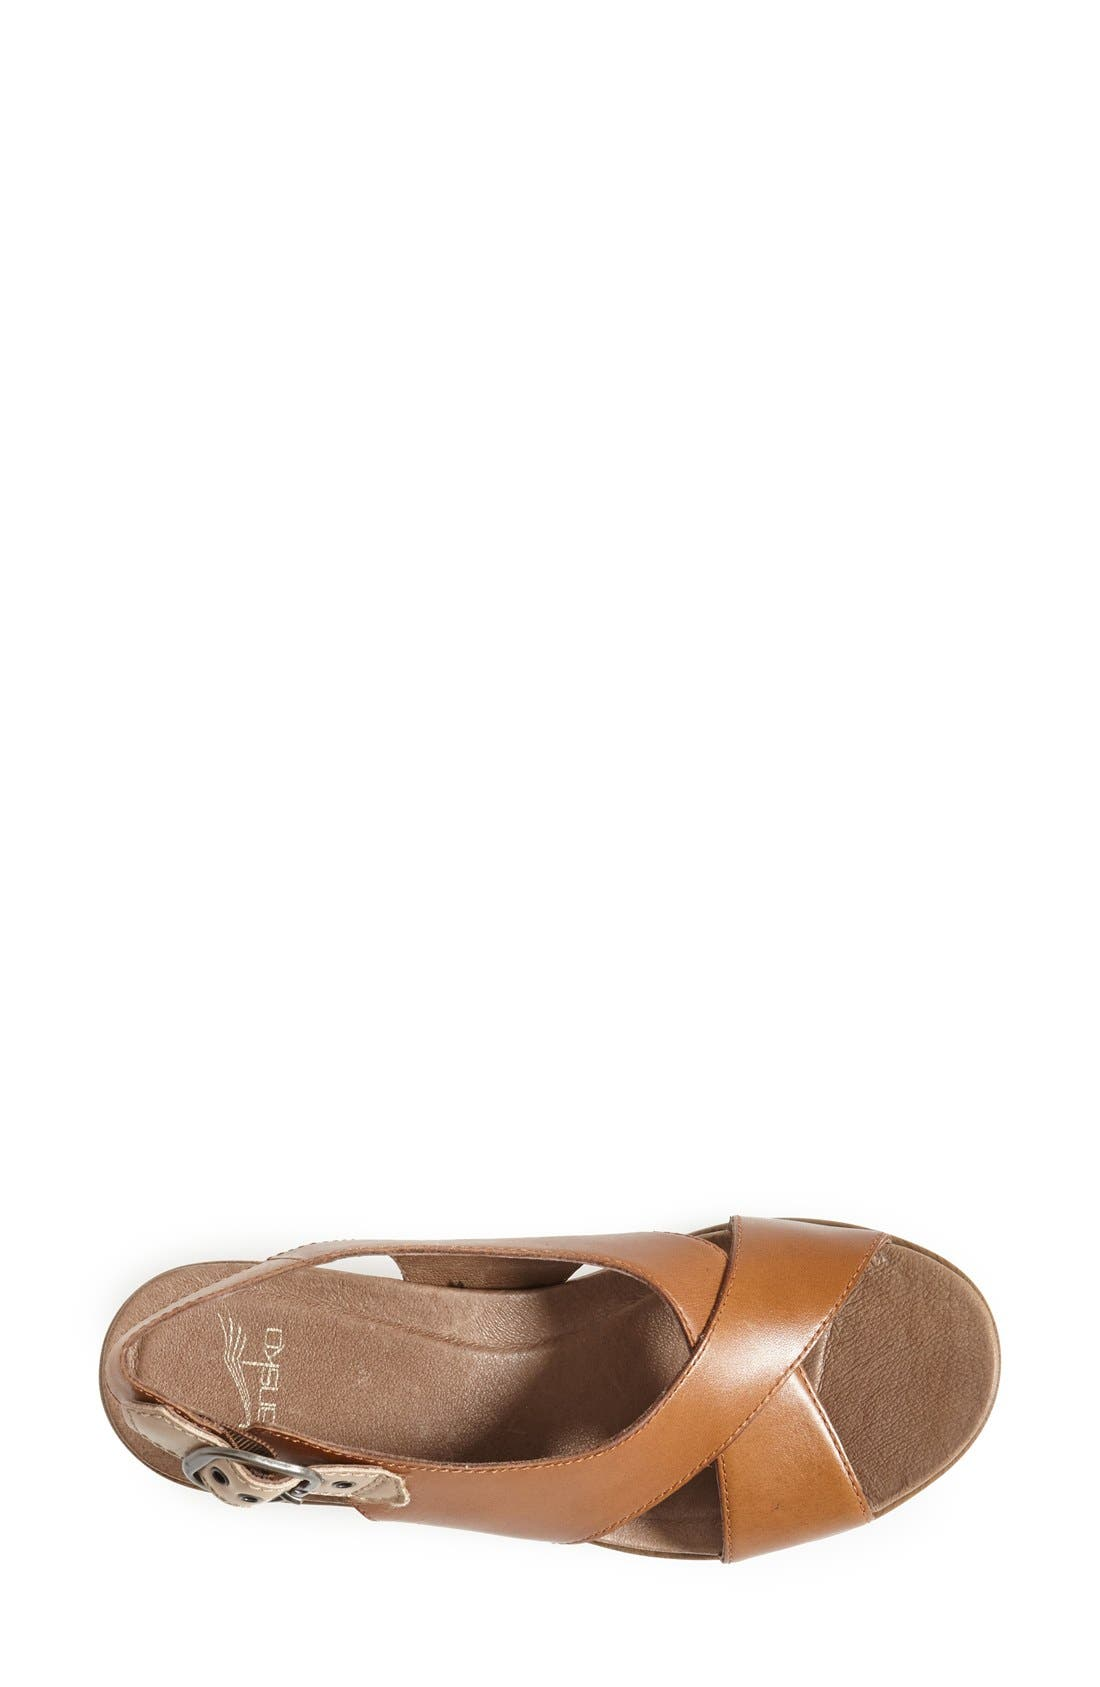 Alternate Image 3  - Dansko 'Jacinda' Sandal (Women)